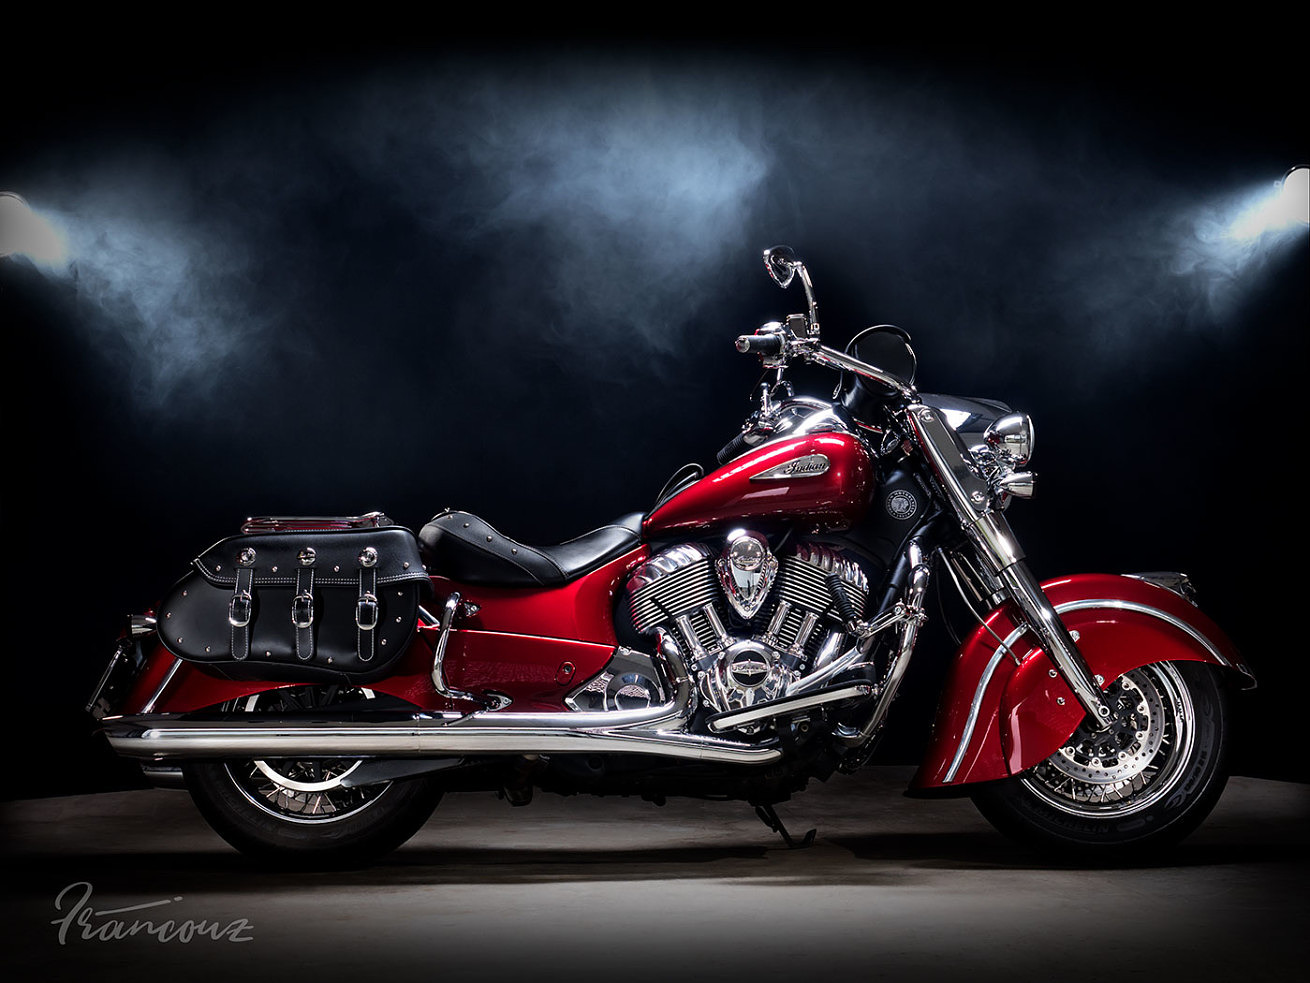 Indian Motorcycle Chief Classic 2014 | Custom Red Candy Red